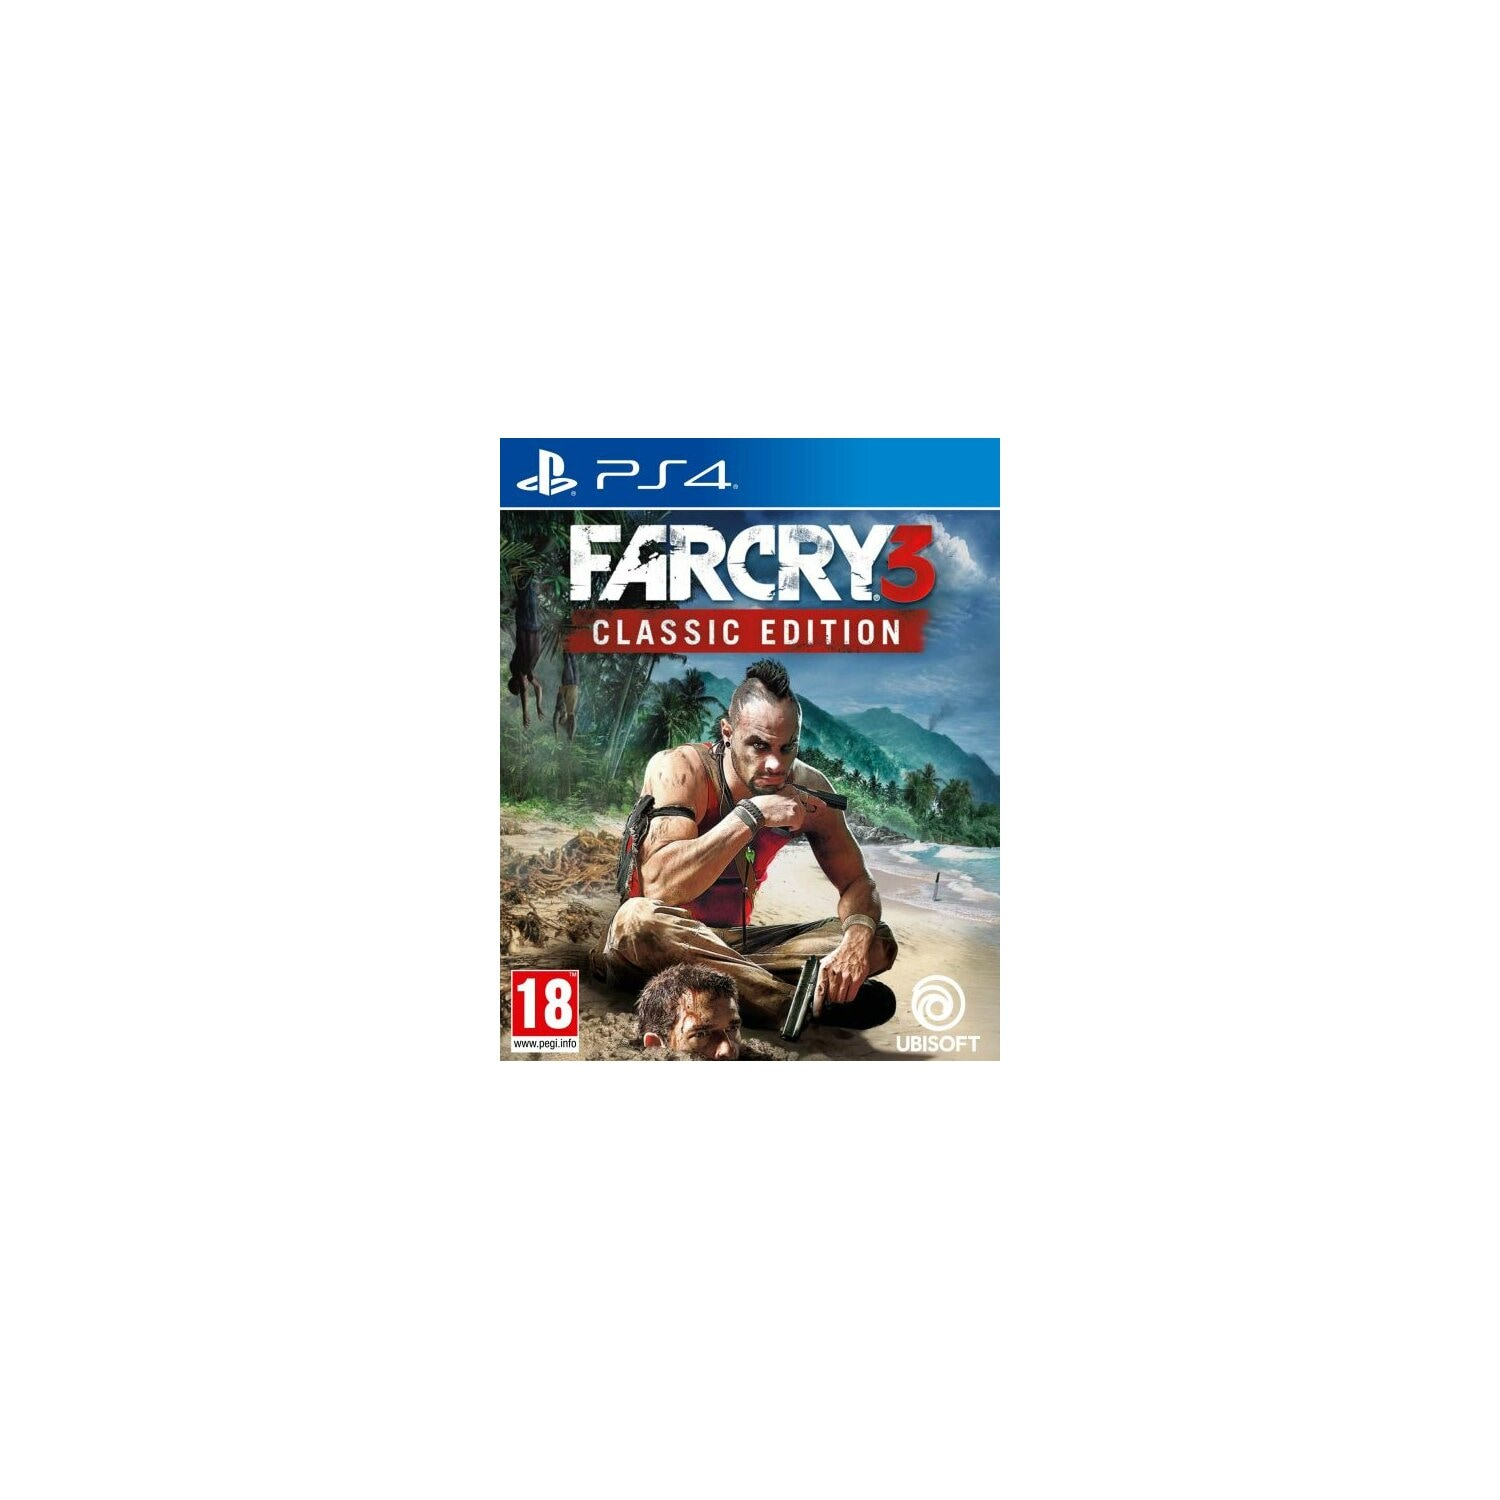 Gra PS4 Far Cry 3 Classic Edition